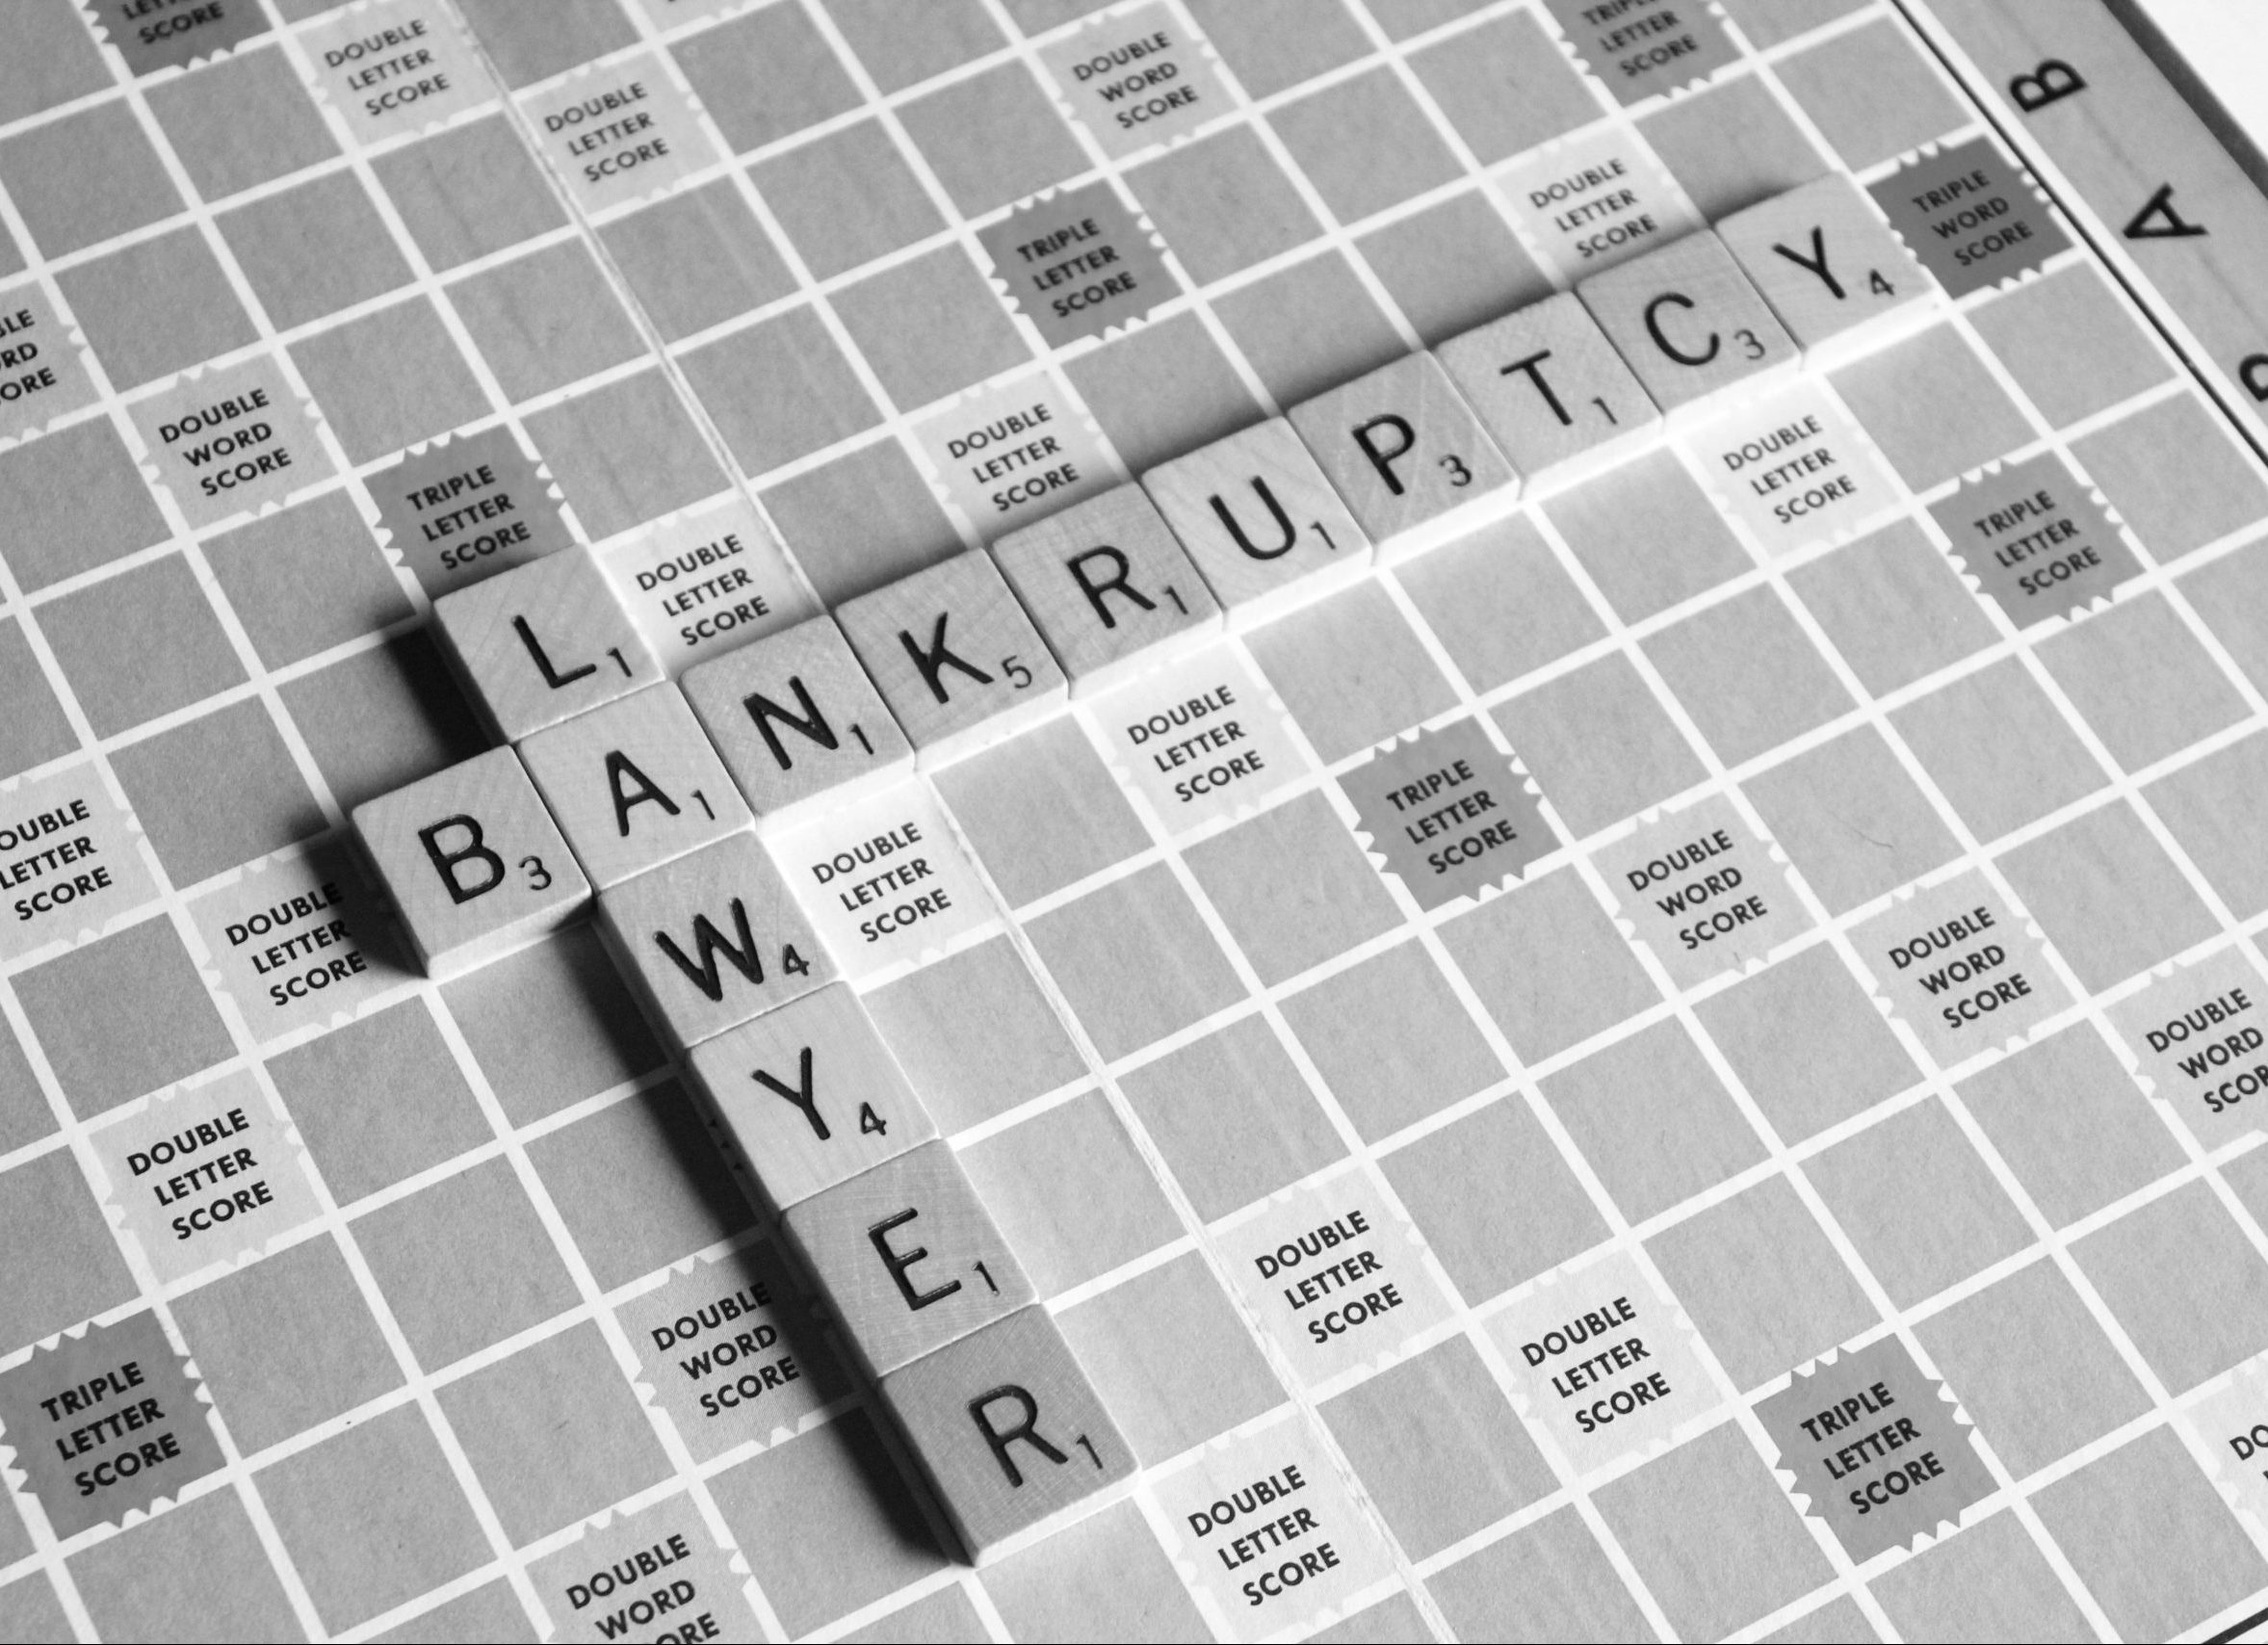 bankruptcy lawyer scrabble game